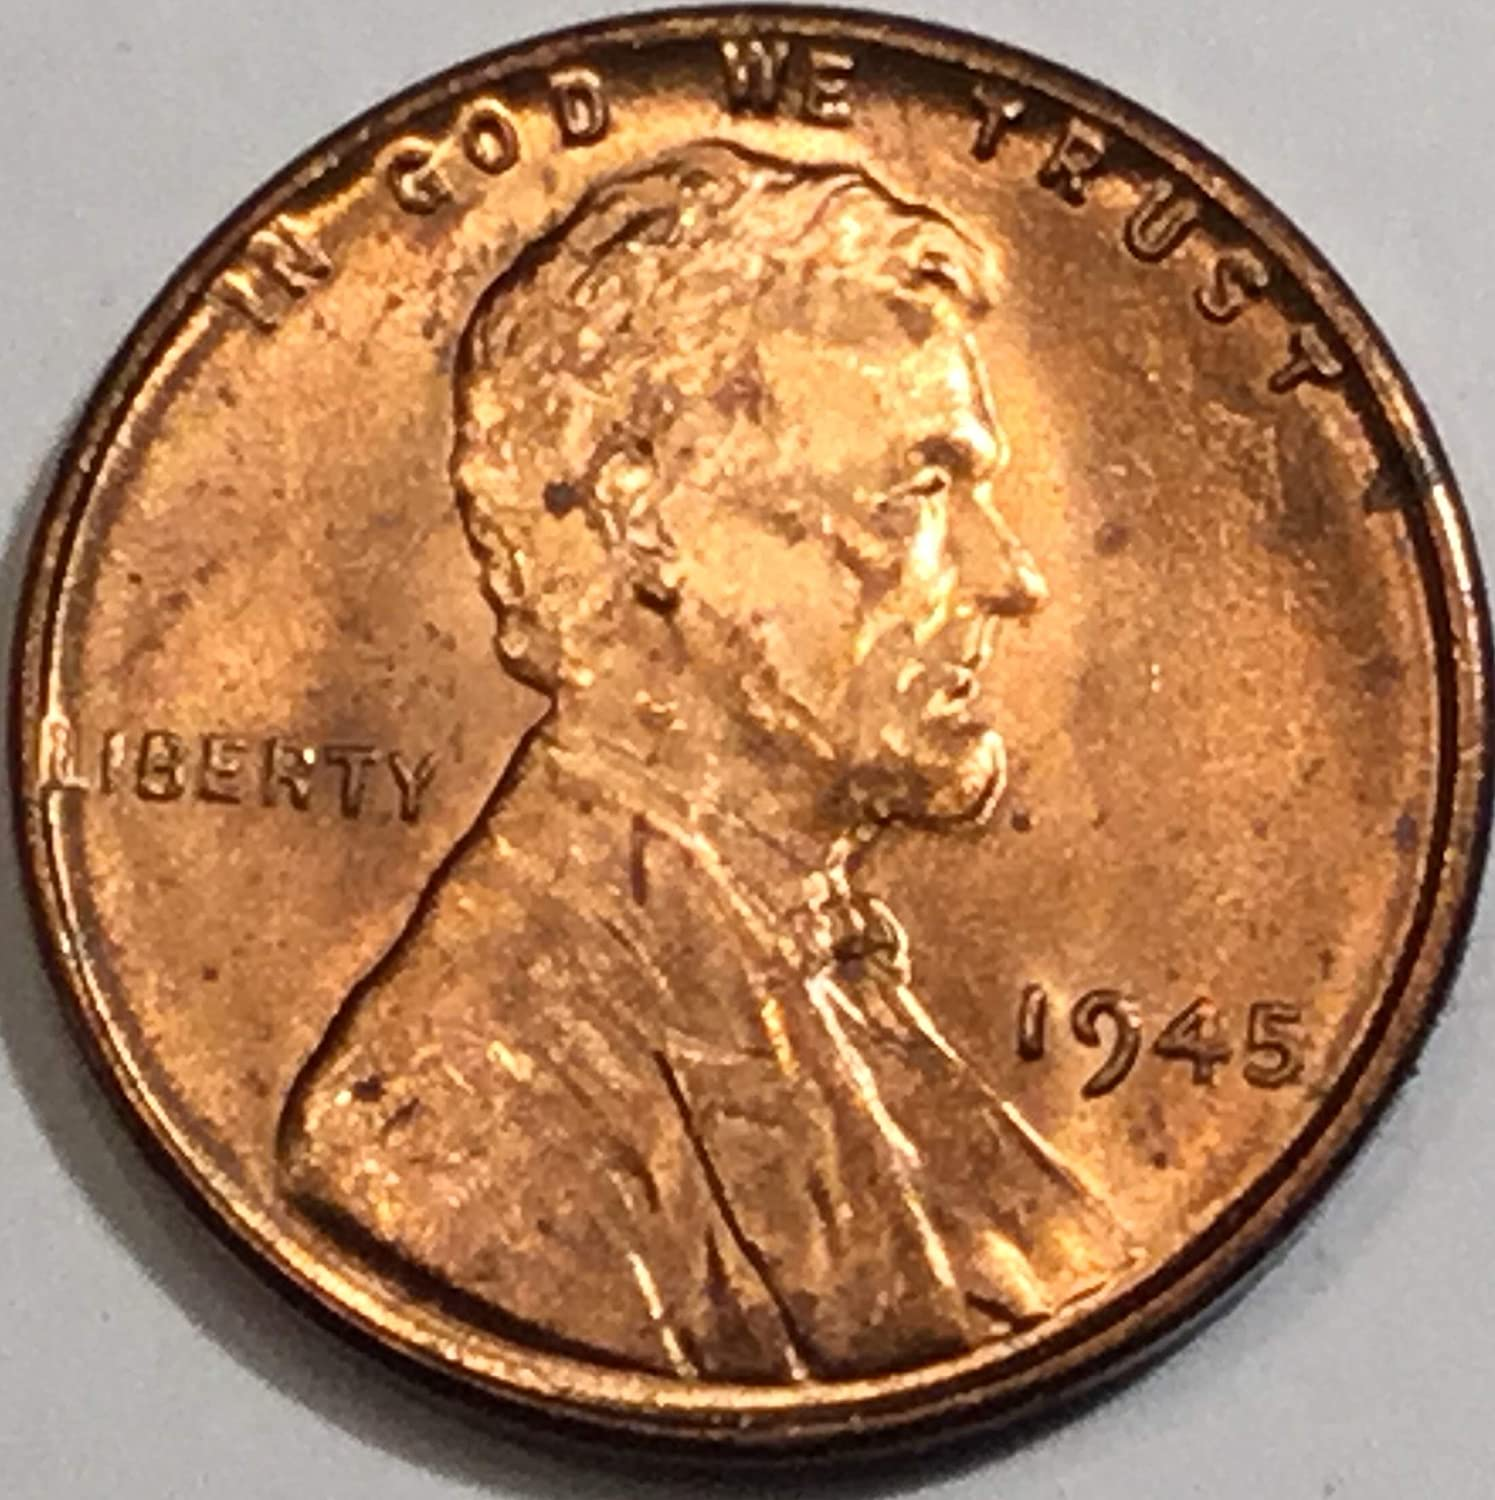 BU 1953 P LINCOLN WHEAT CENT BEAUTIFUL RED BRILLIANT UNCIRCULATED